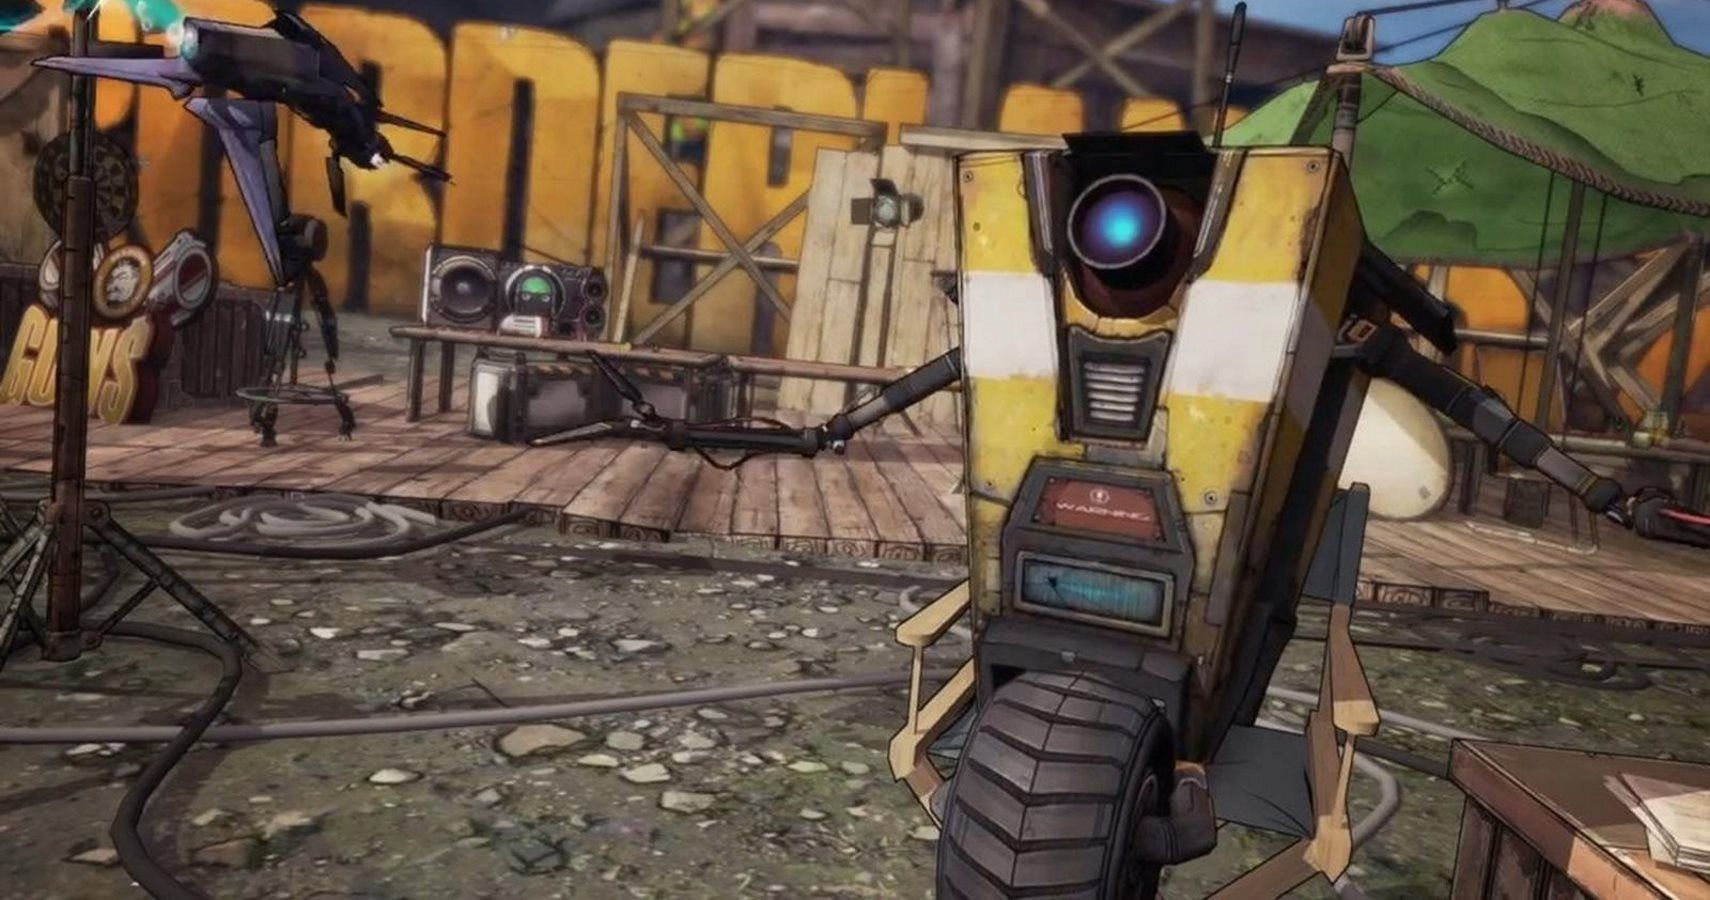 Gearbox Might Be Making Fun Of Claptrap's Old Voice Actor In New